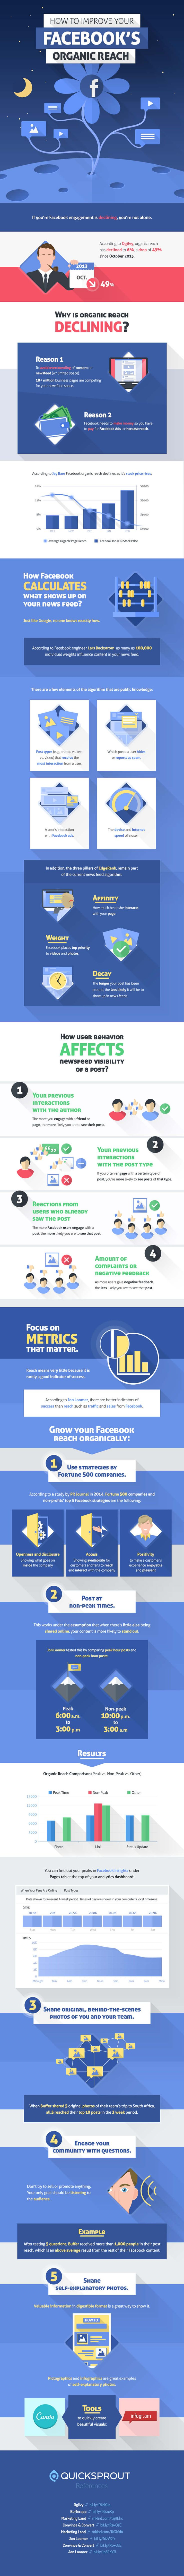 How to Improve Your Reach on Facebook [INFOGRAPHIC] | Social Media Today